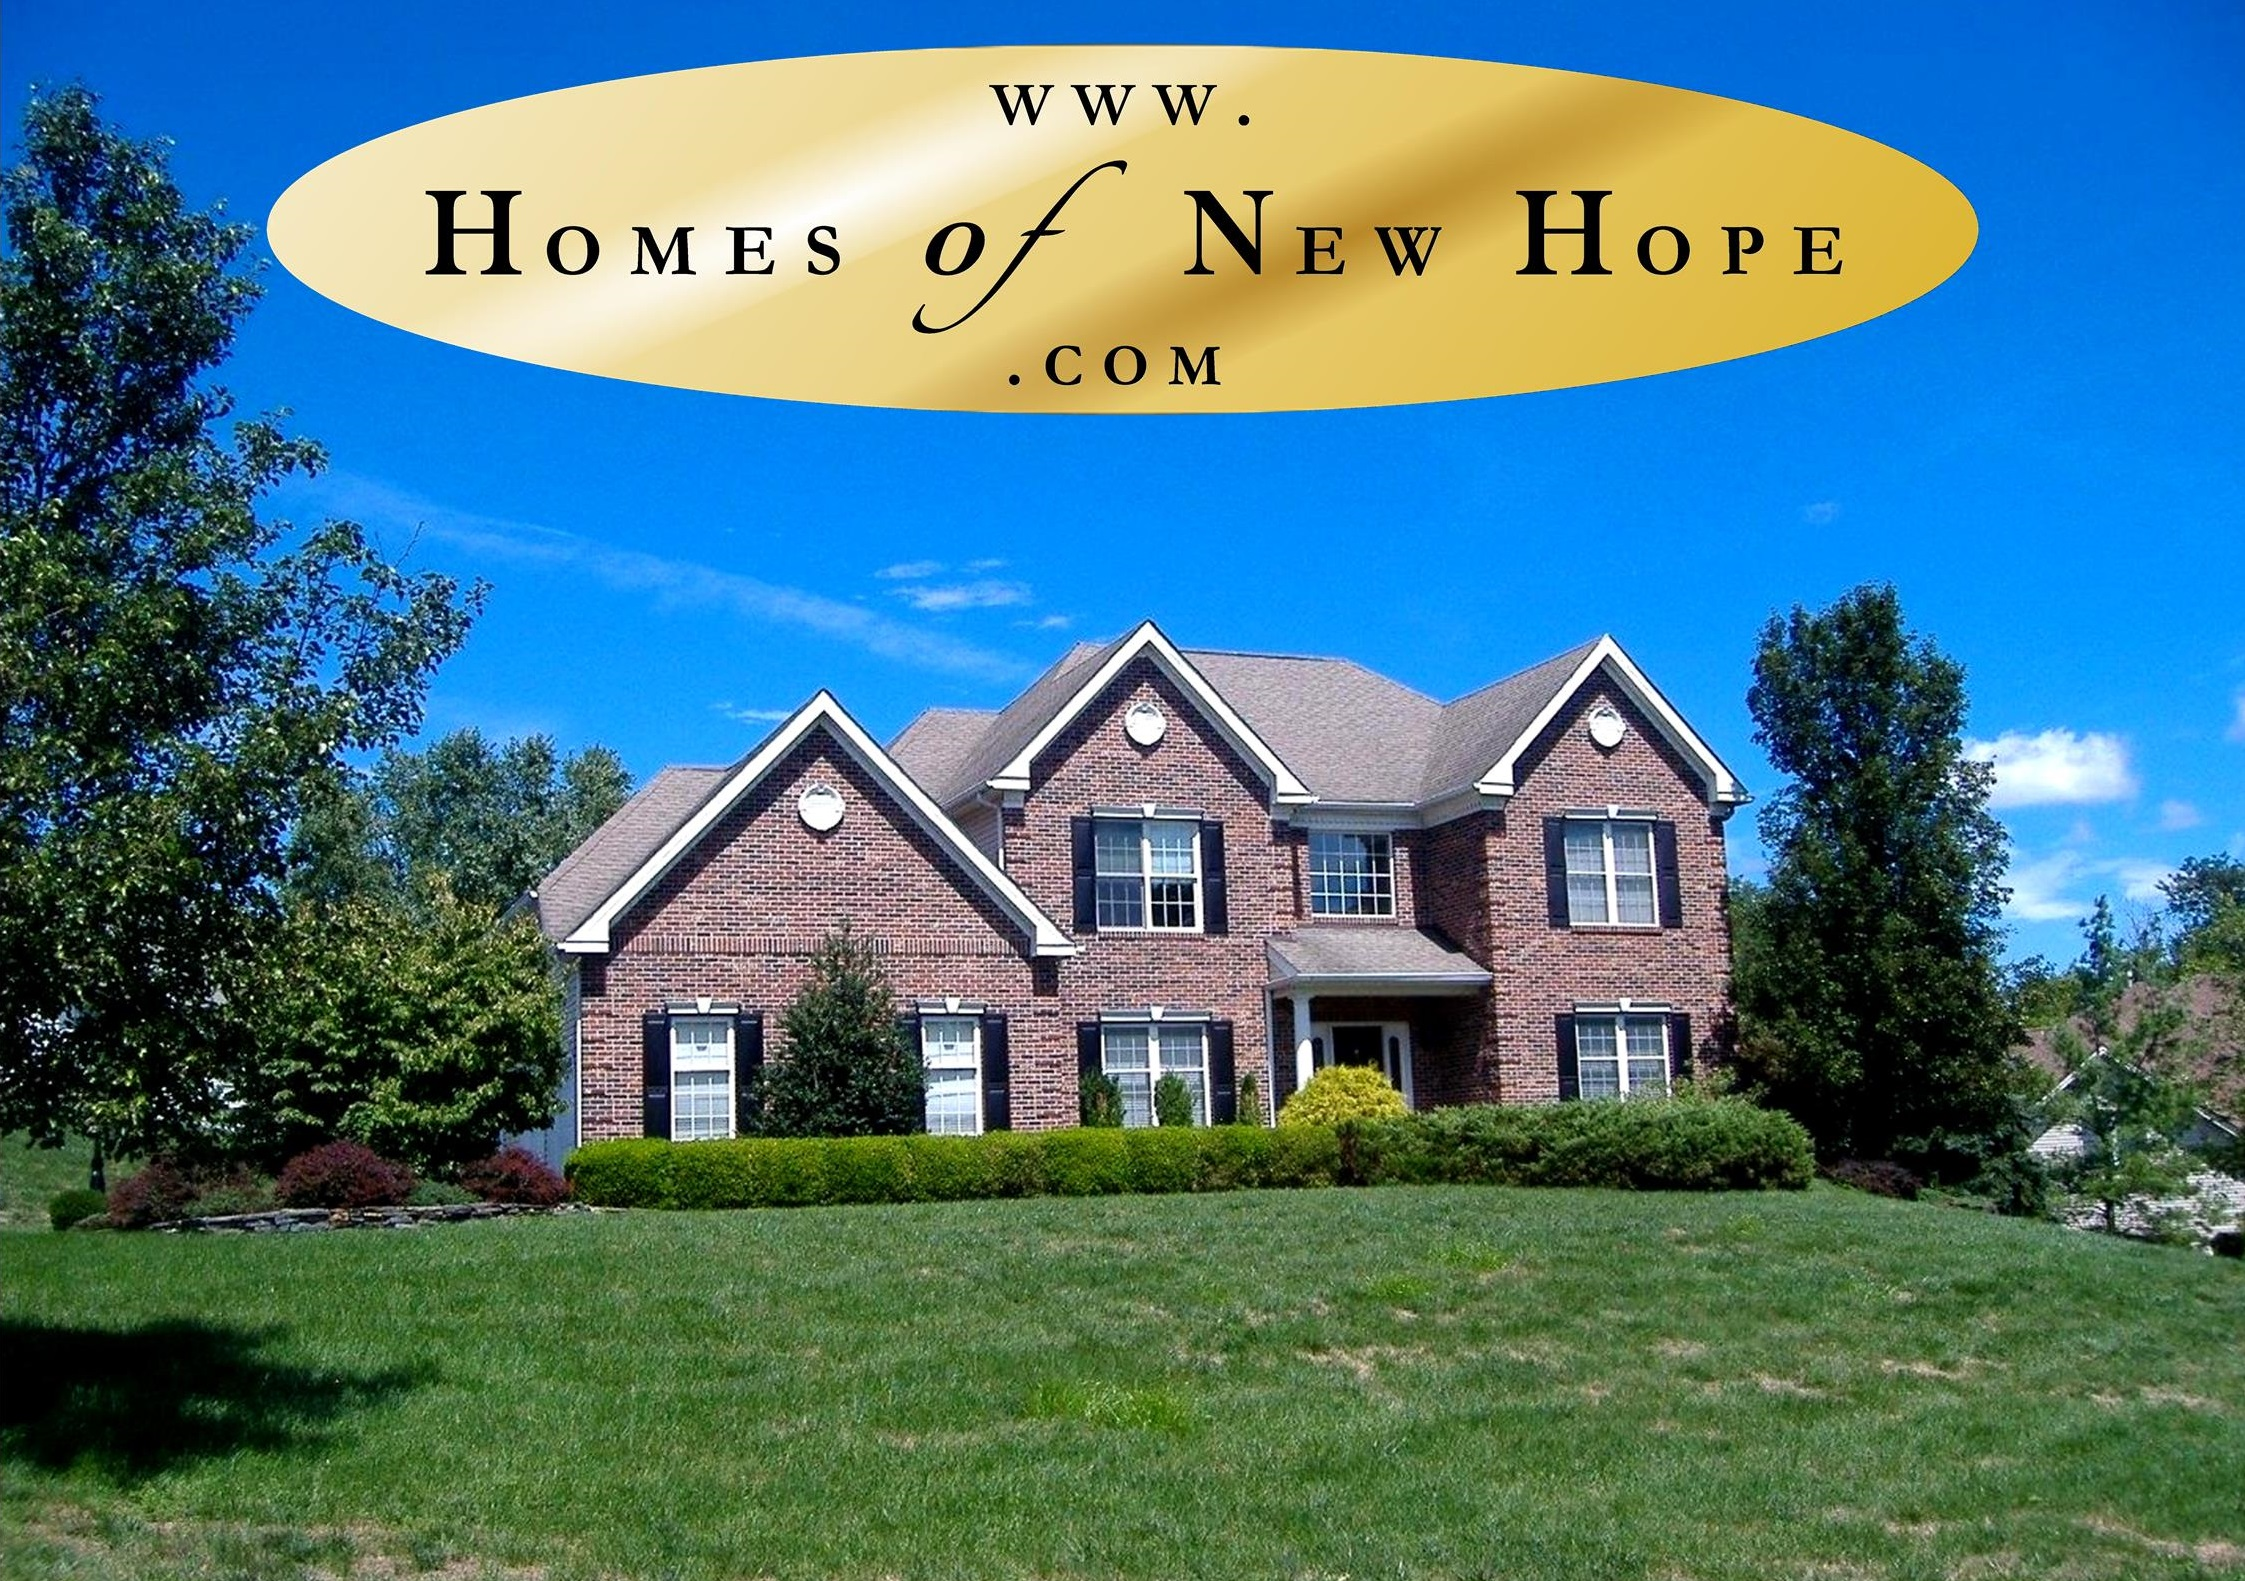 www.HomesOfNewHope.com | Homes Of New Hope Pa for Sale | New Hope Homes for Sale | New Hope Realtors | Weidel